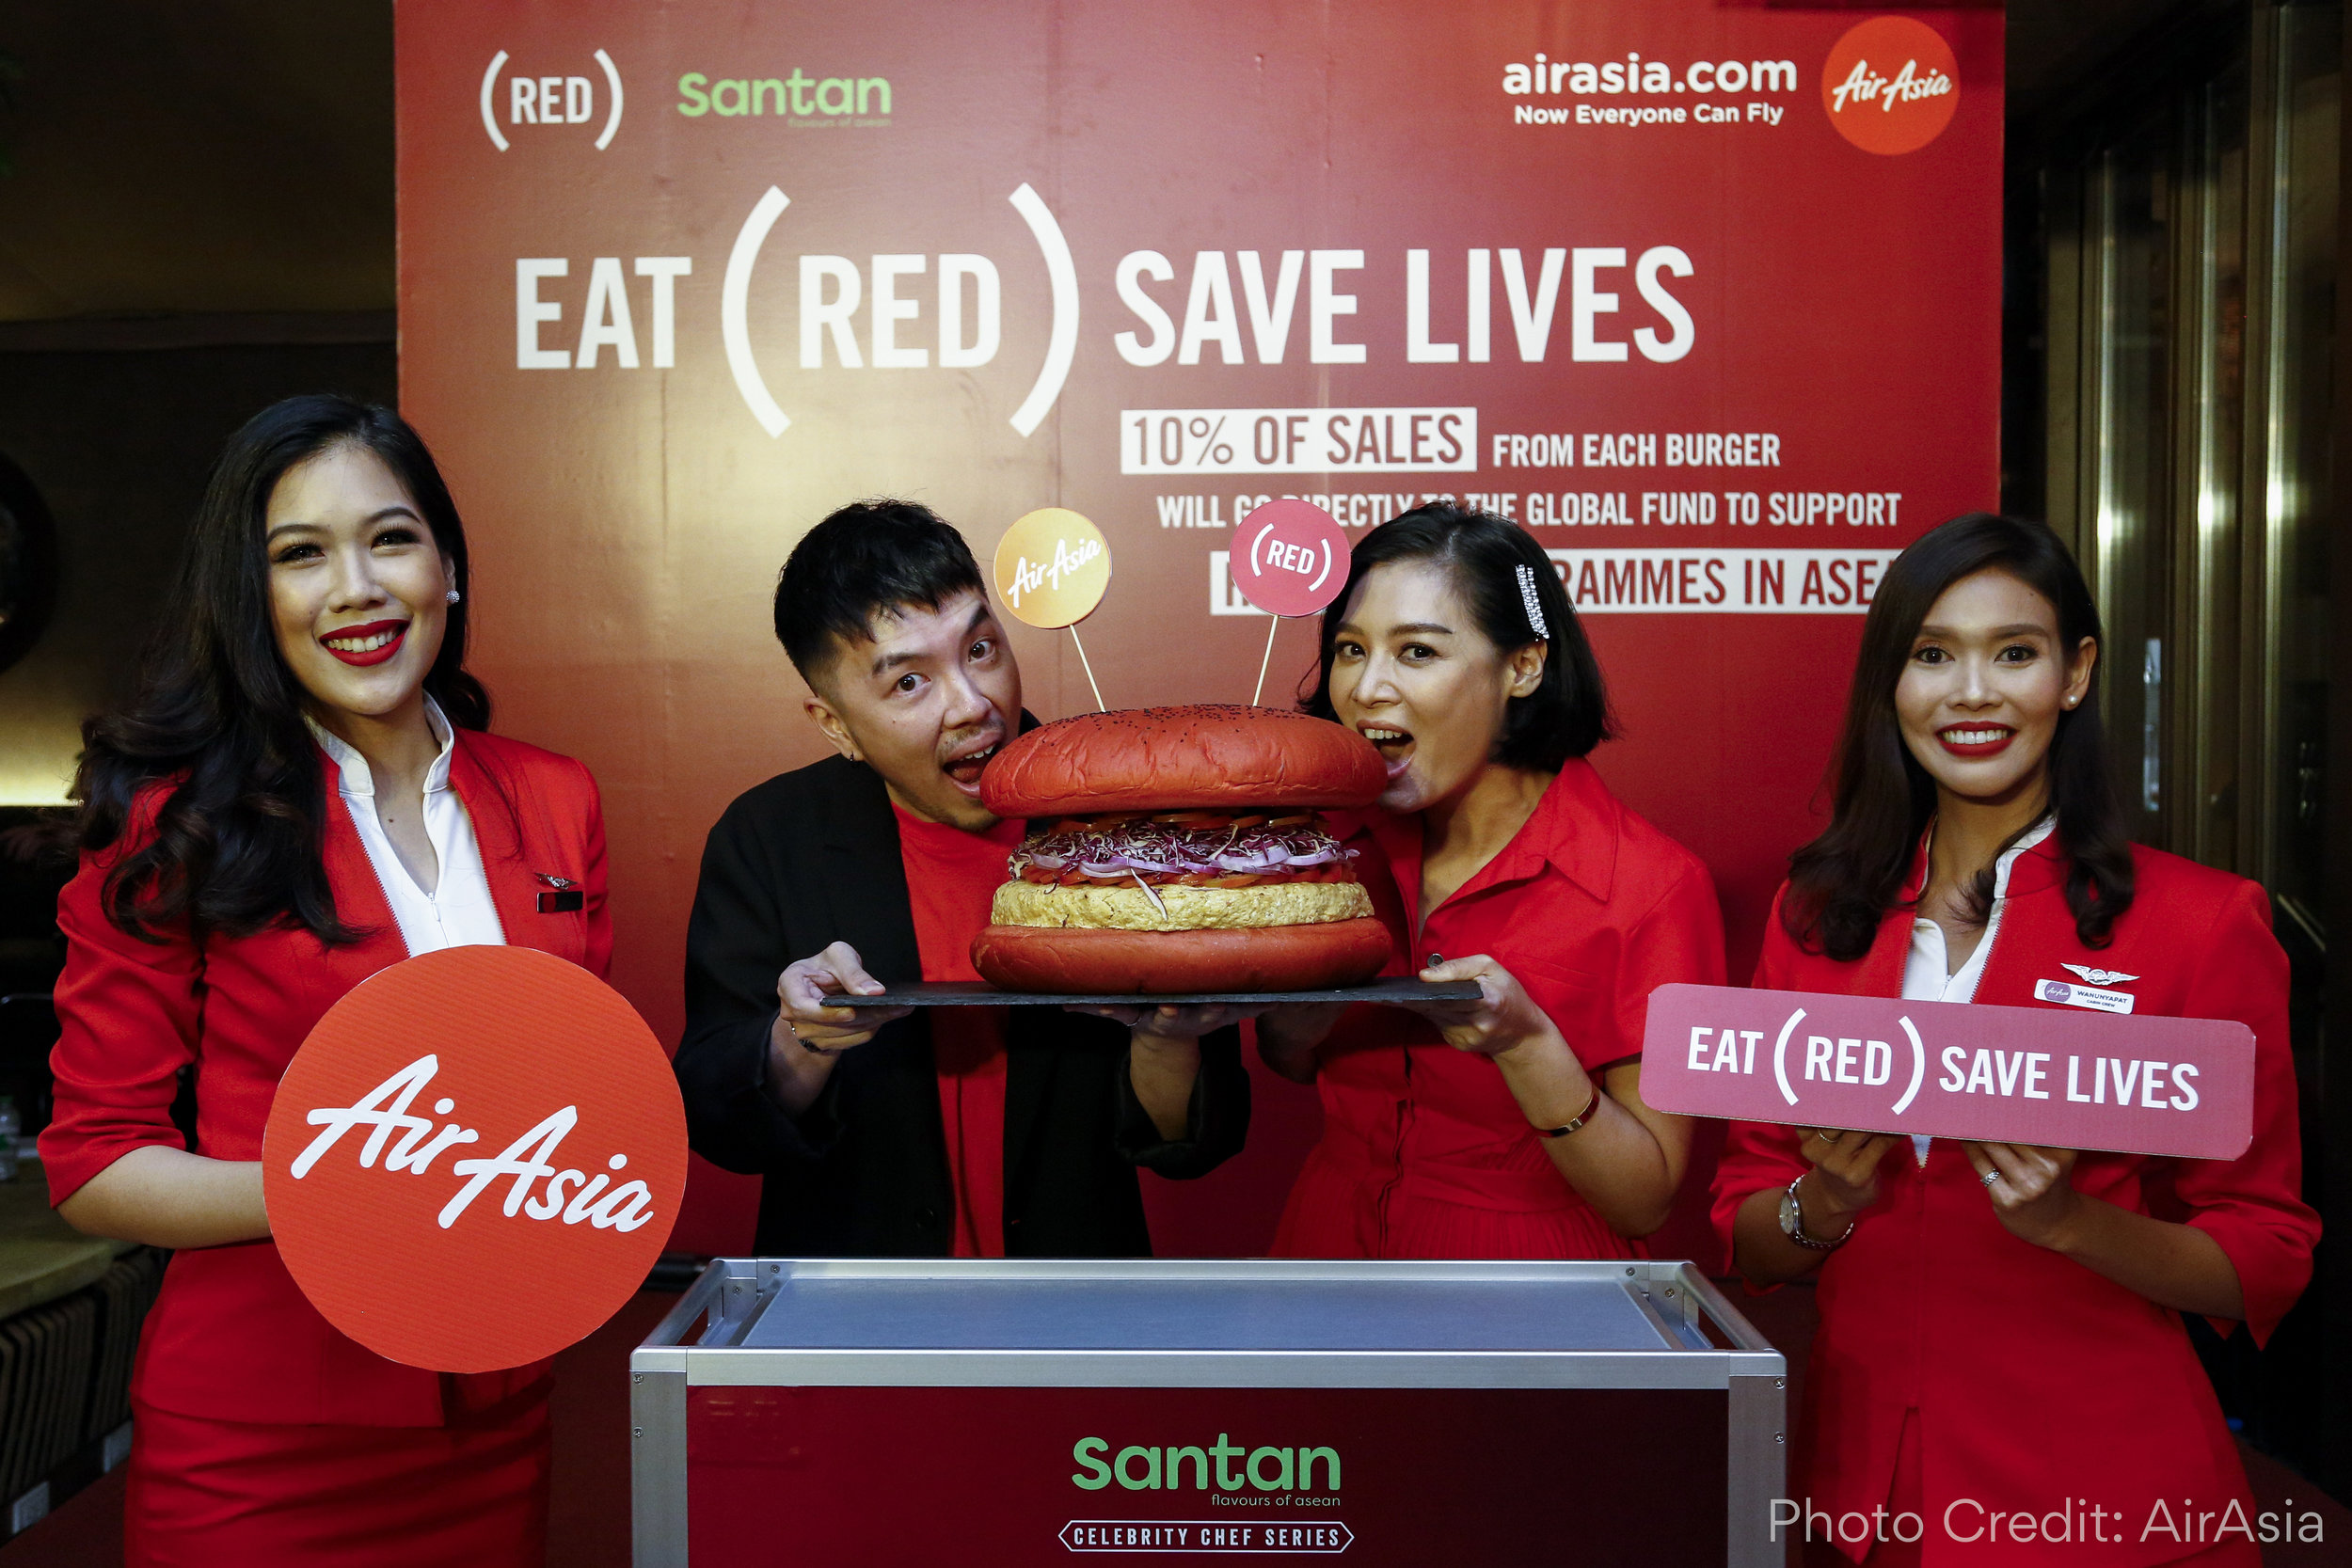 Hong Thaimee and AirAsia team members introducing the INSPI(RED) Burger at the July 2nd launch event in Bangkok, Thailand.